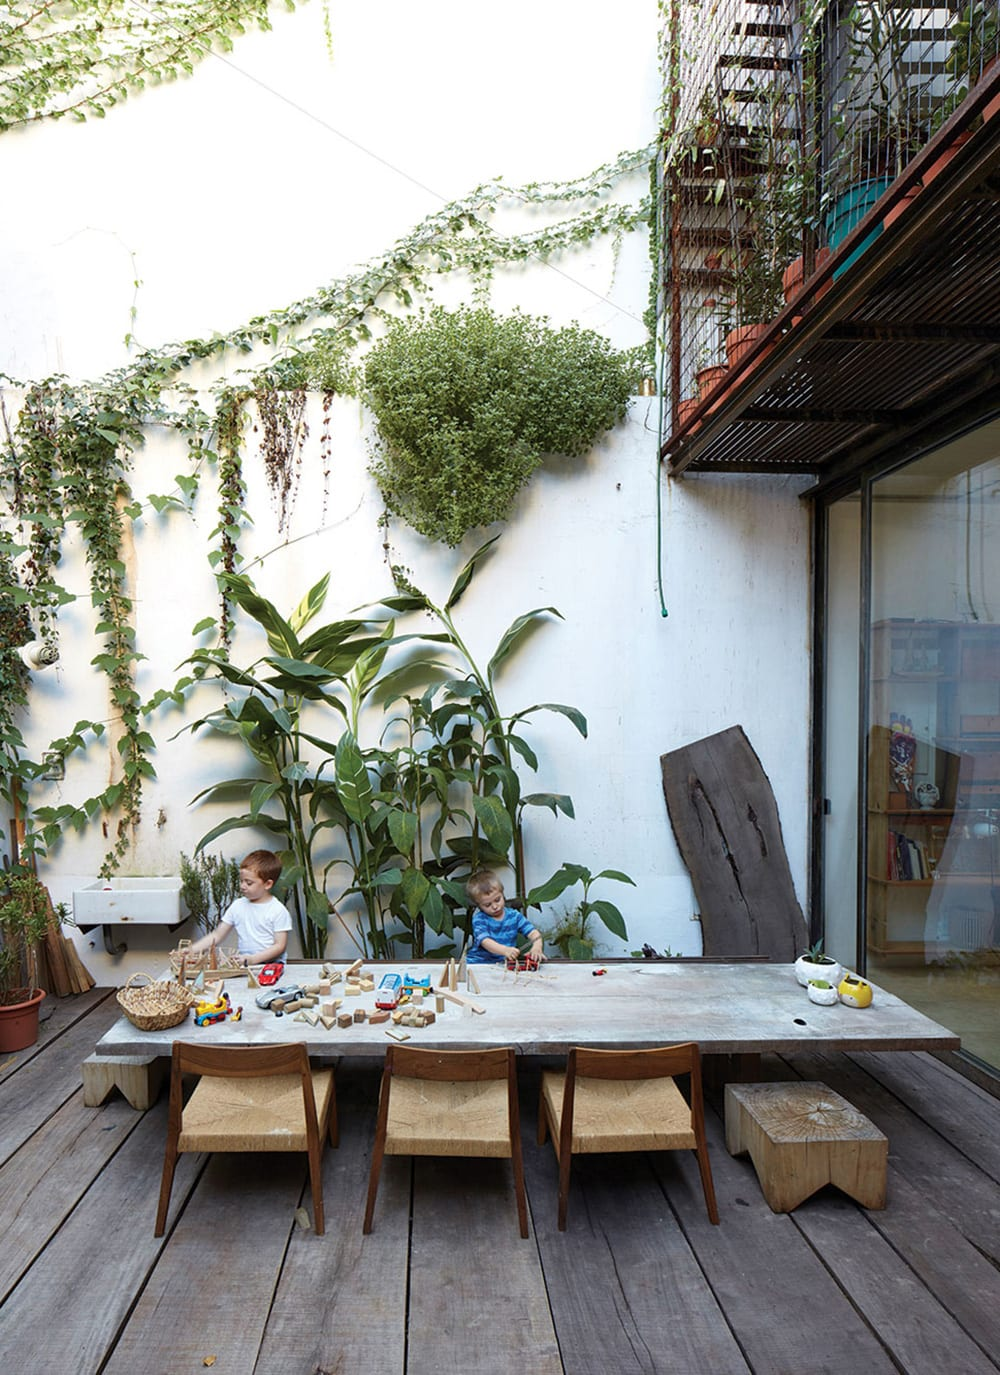 Clara house in buenos aires argentina by tovo sarmiento for Clara house